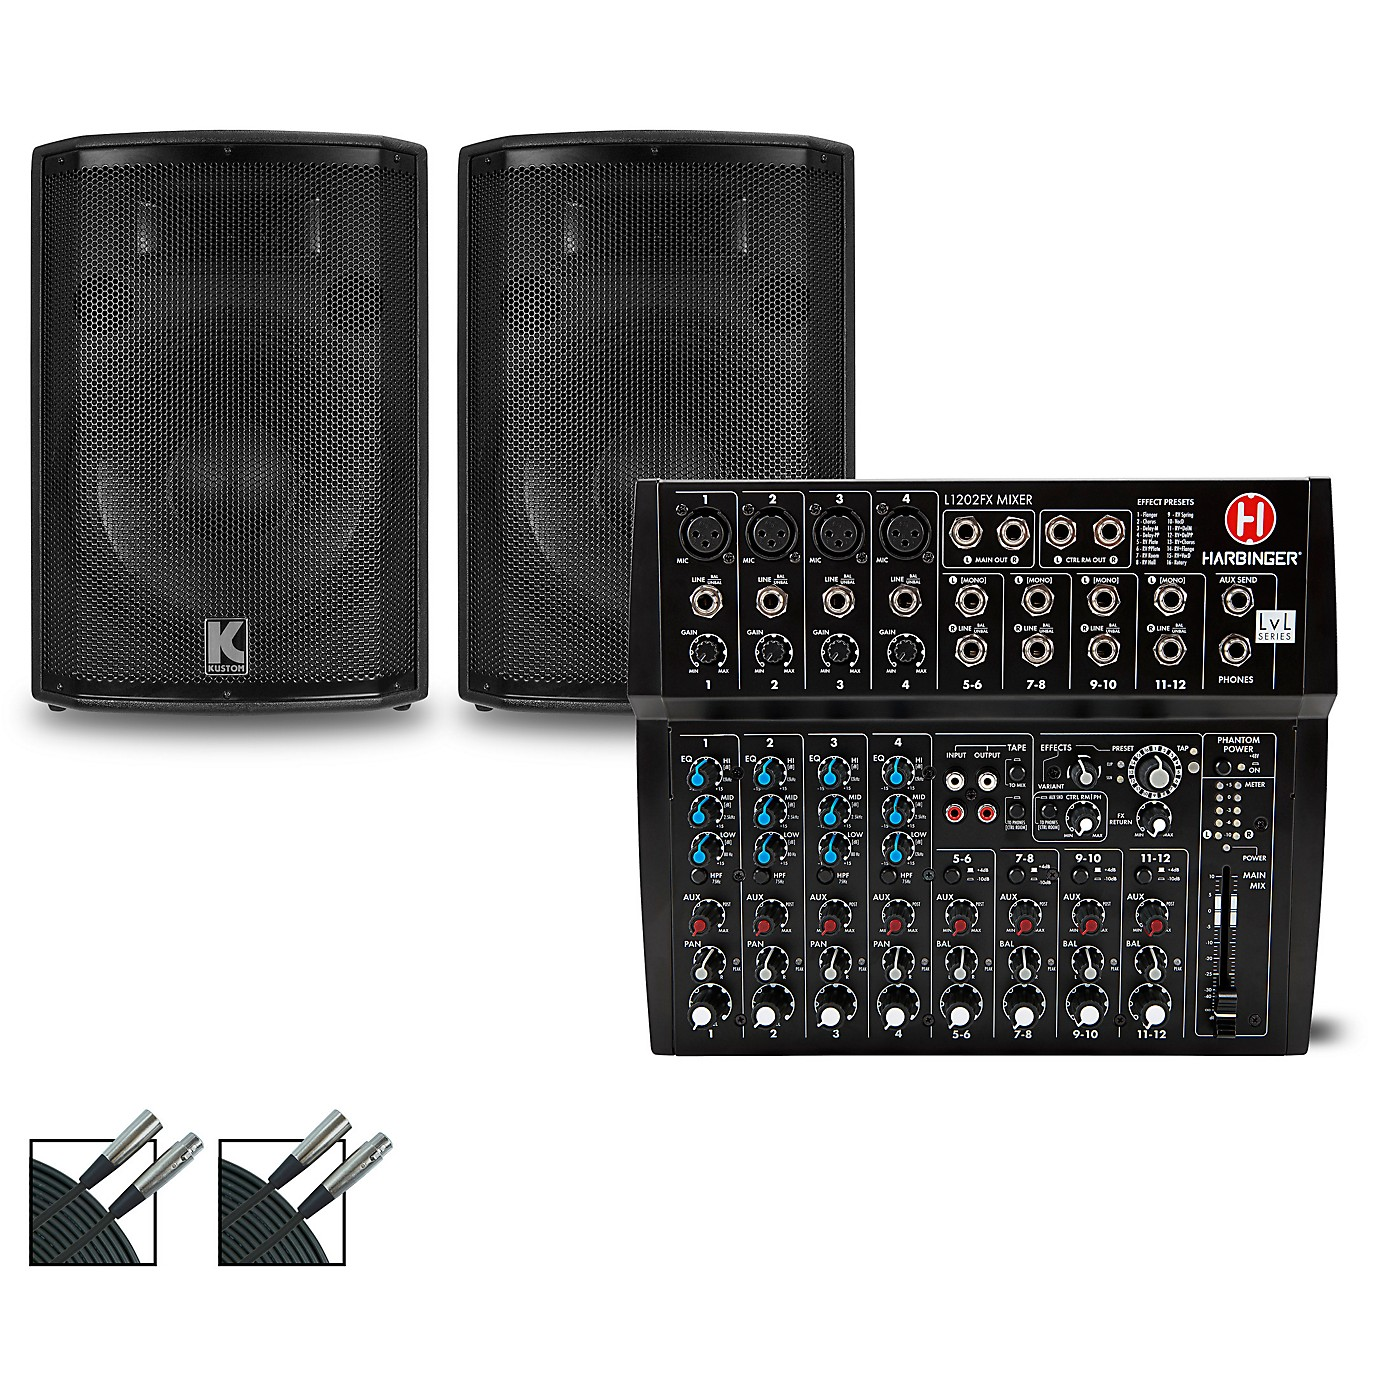 Harbinger L1202FX Mixer and Kustom HiPAC Speakers thumbnail